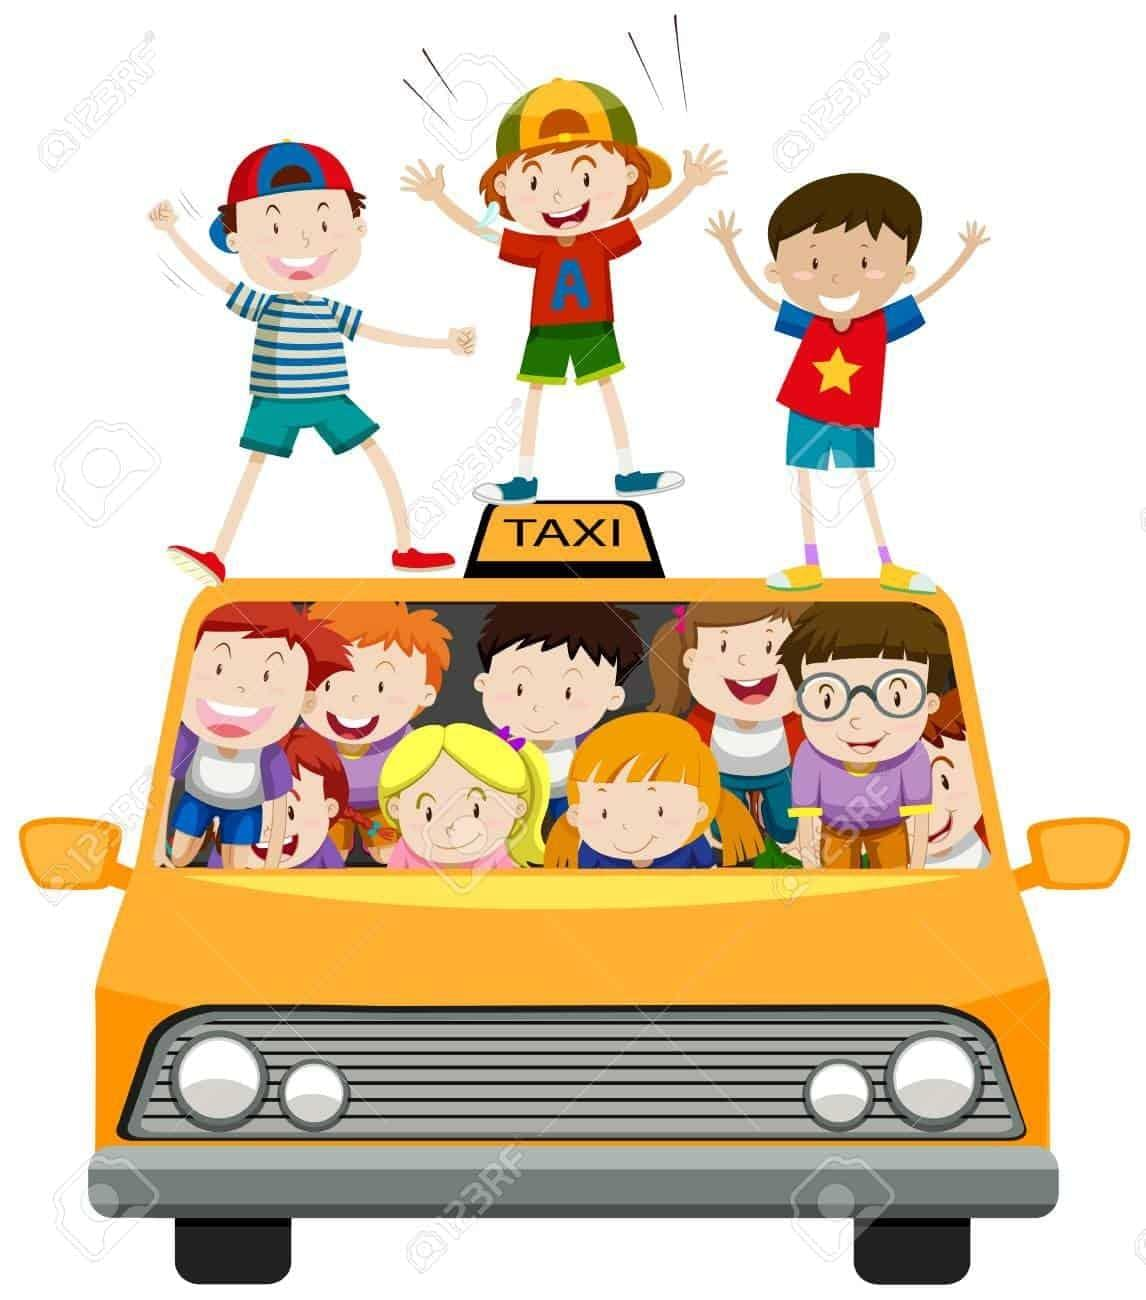 Children riding on taxi illustration